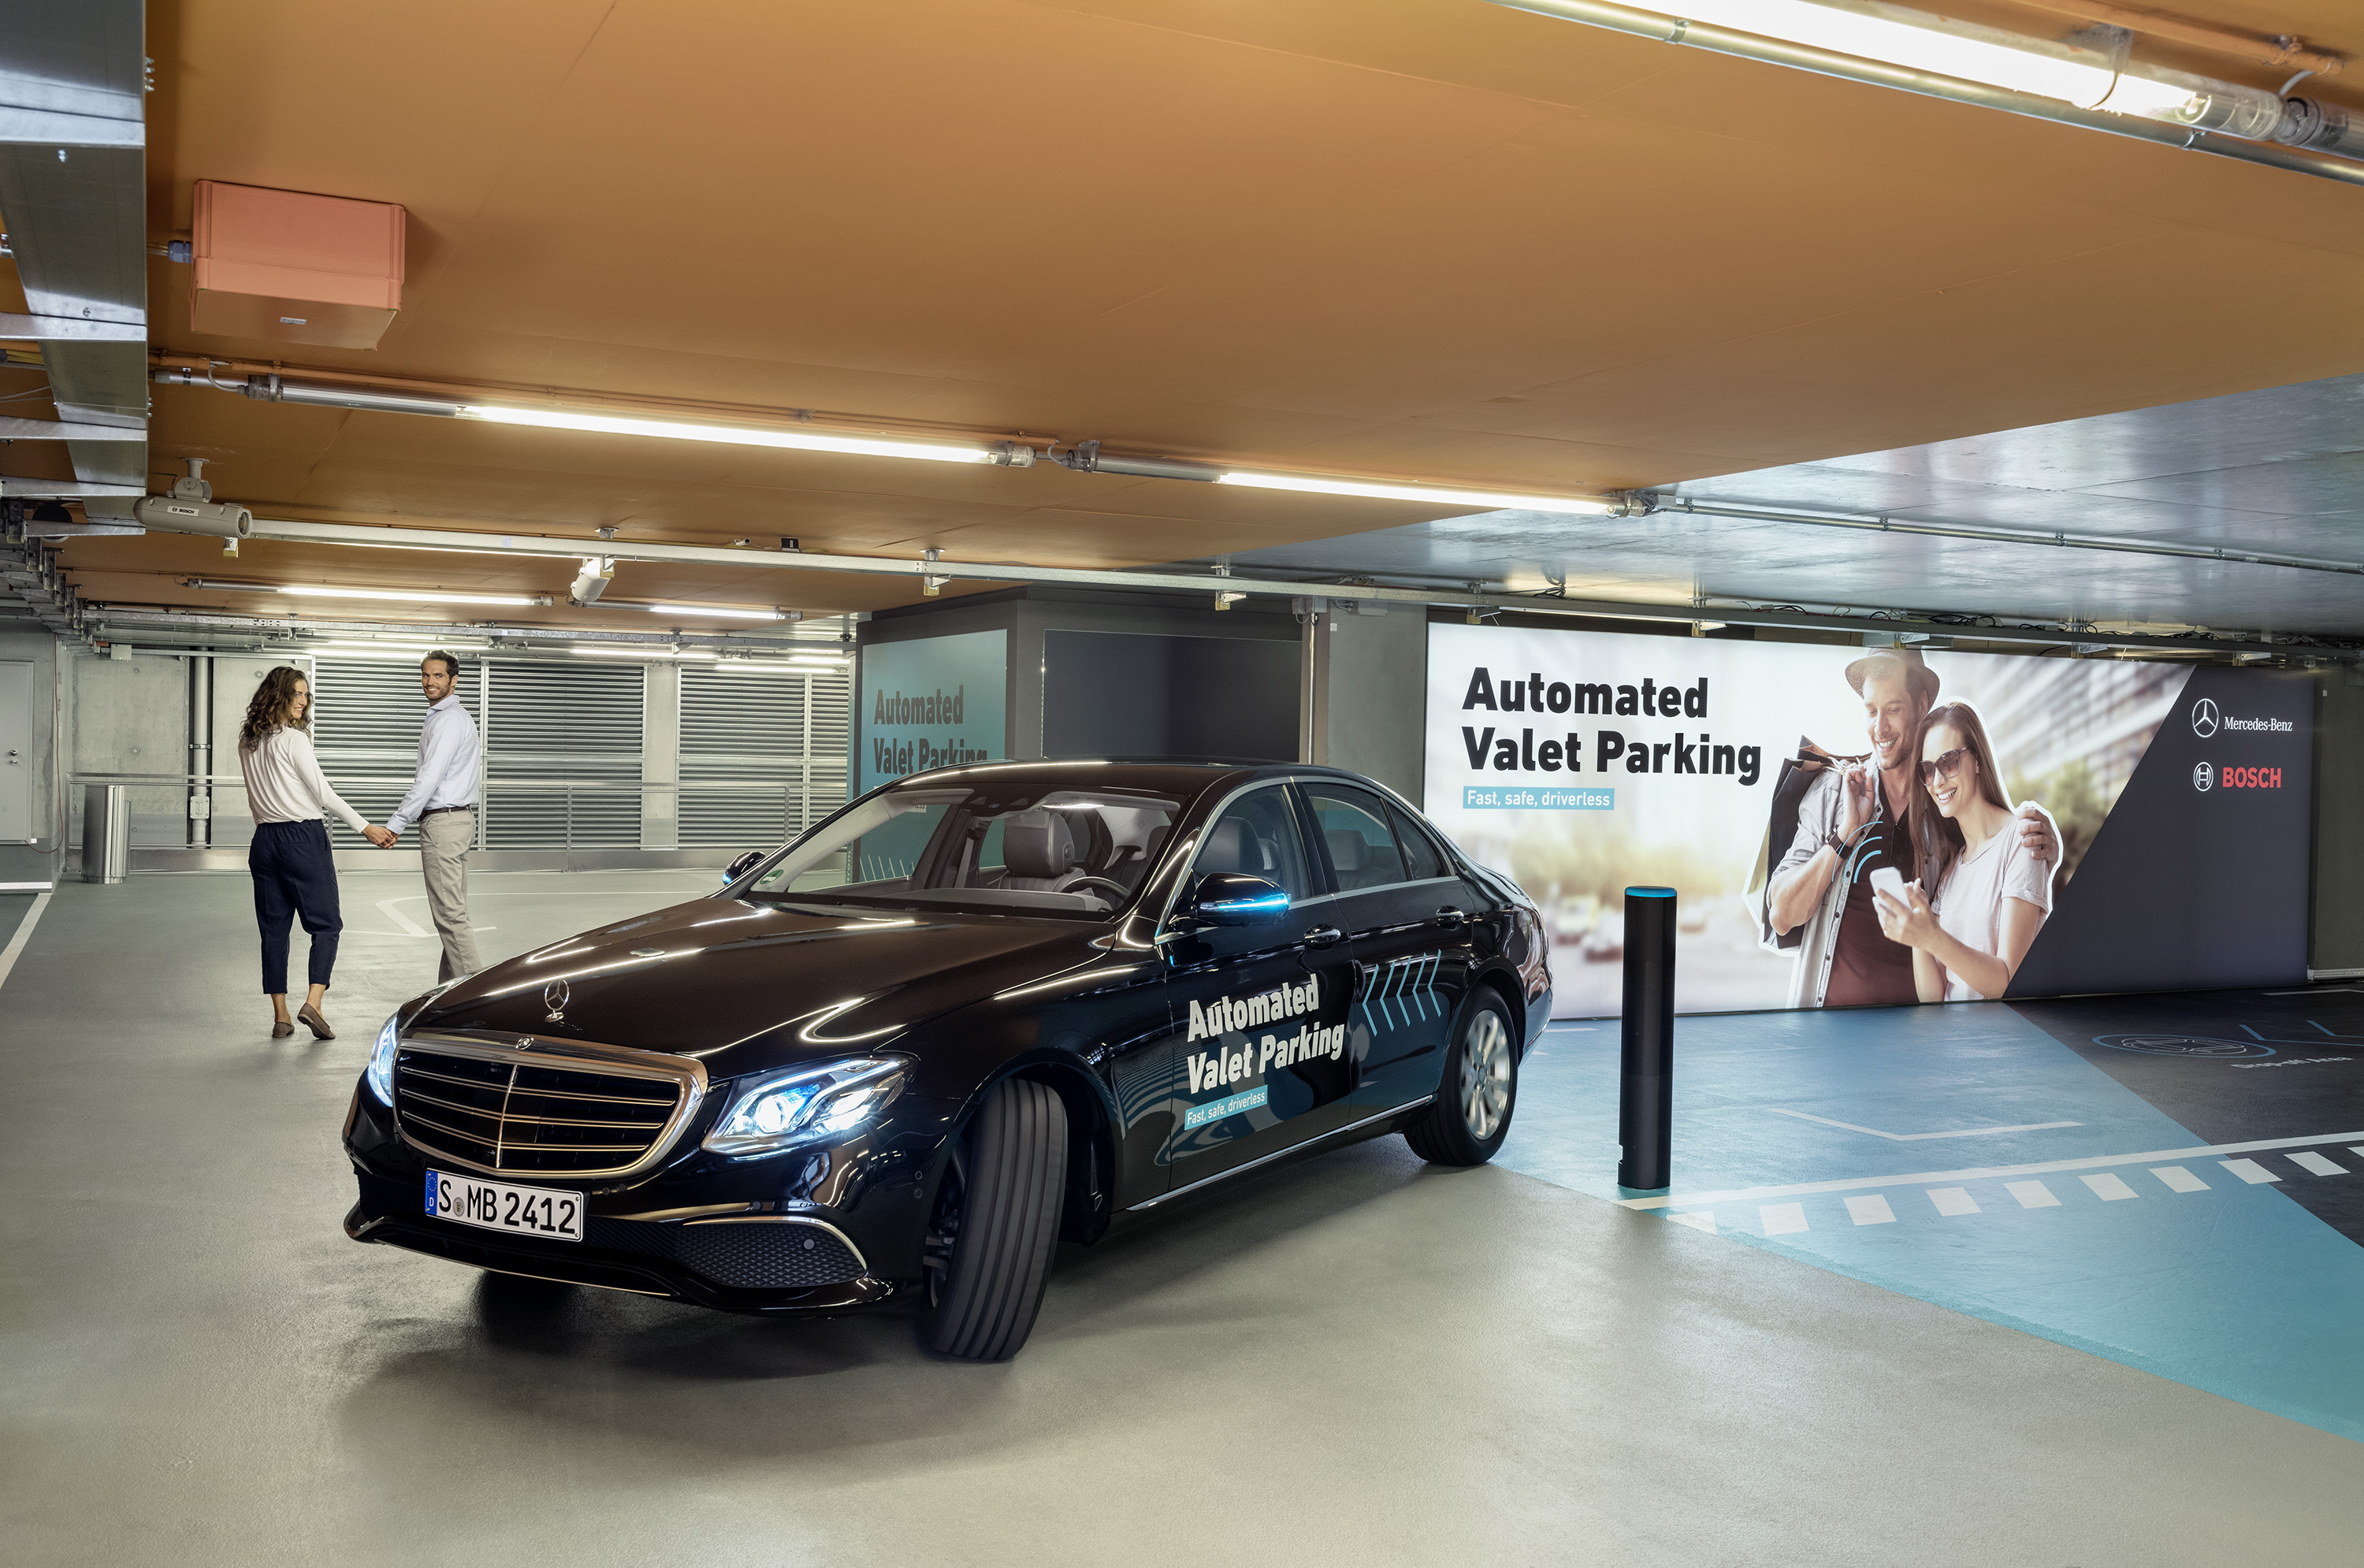 Automated Valet Parking im Parkhaus des Mercedes-Benz Museums in Stuttgart